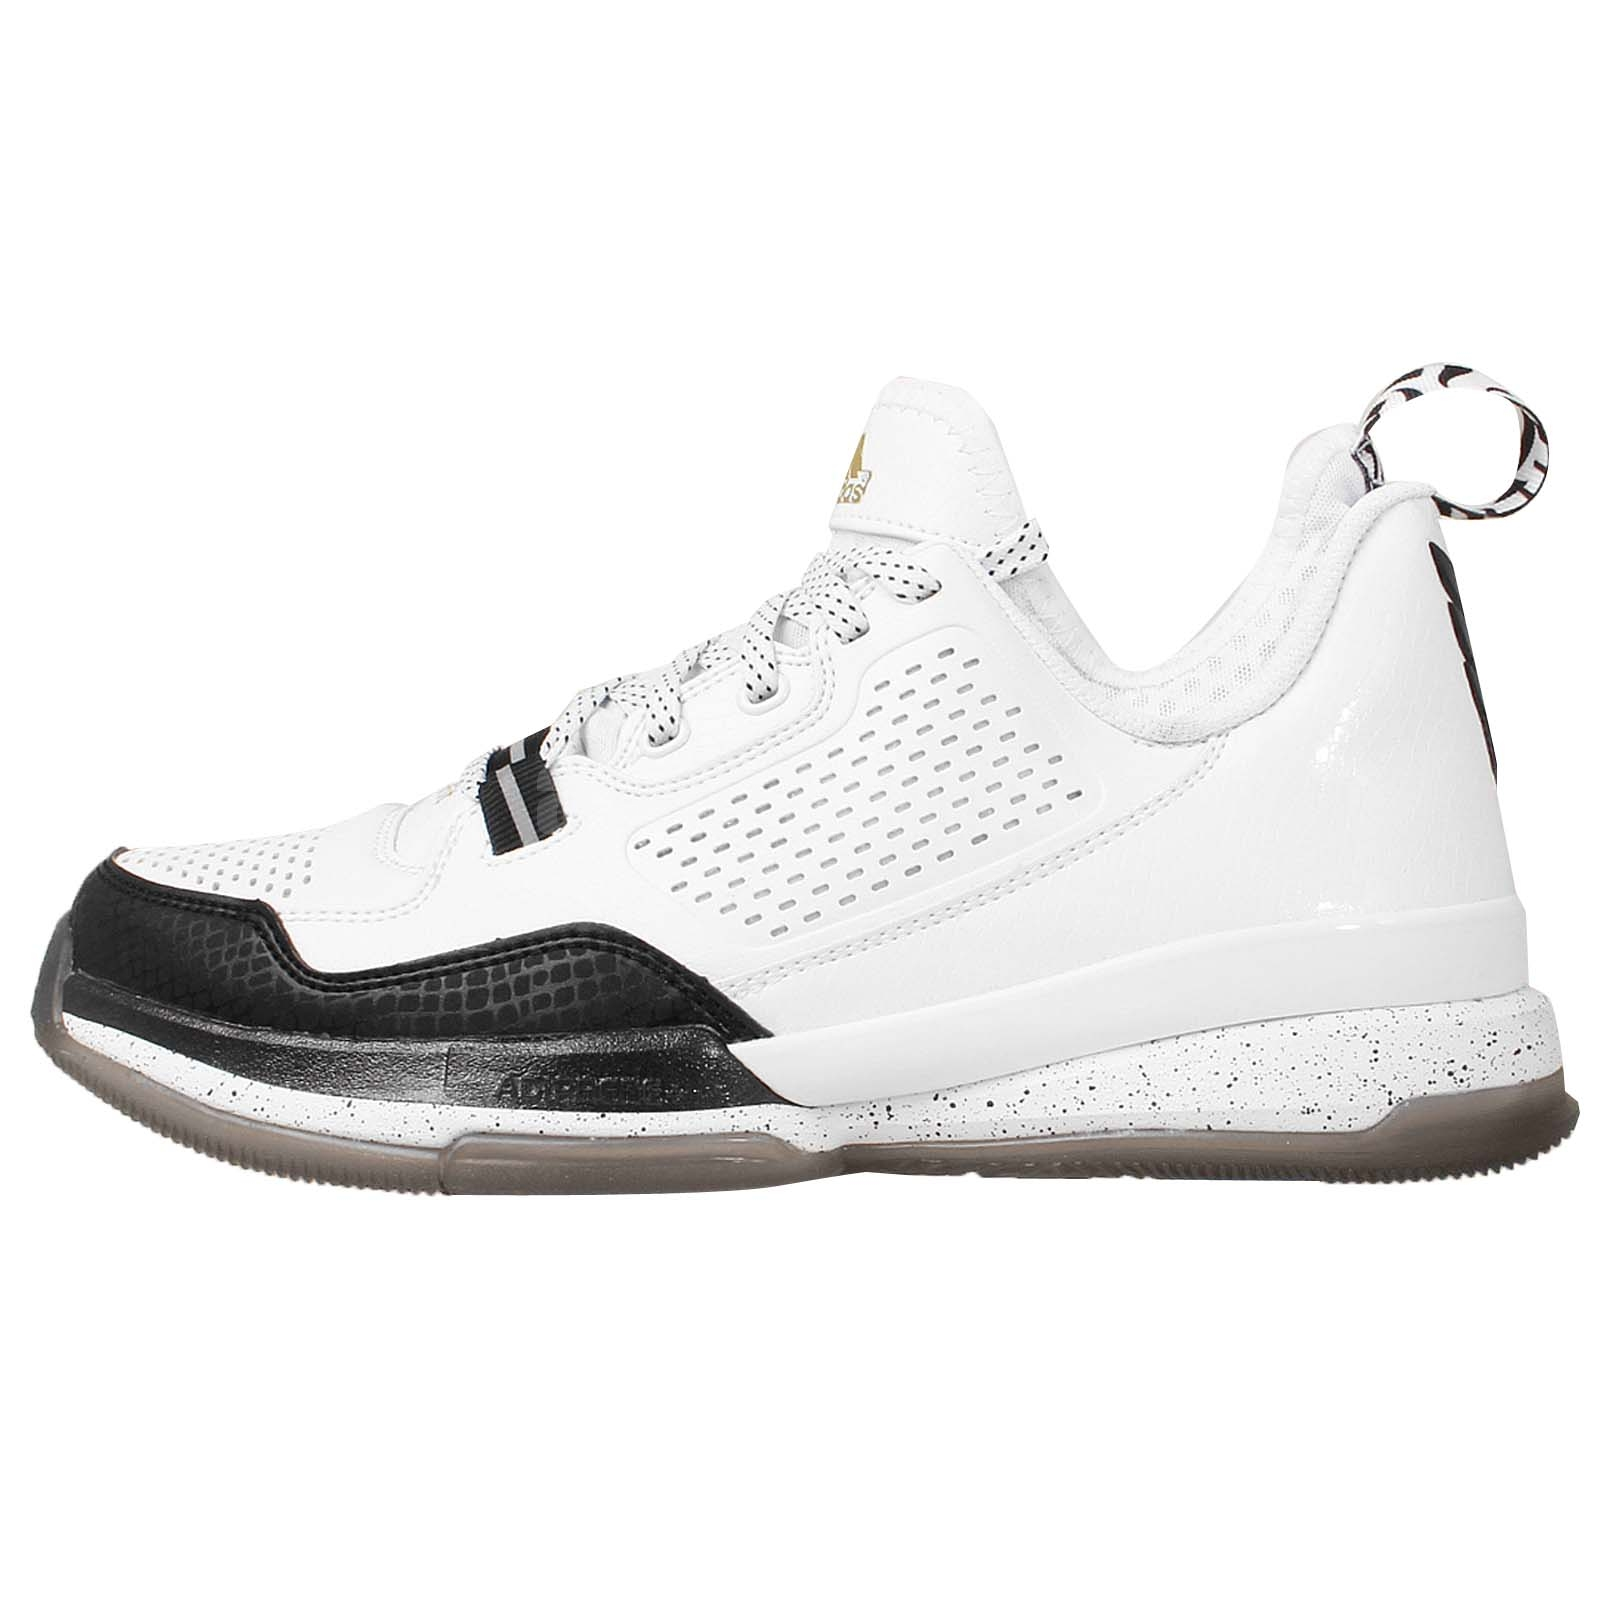 Adidas D Lillard 2015 NYC All Star Damian Lillard White ...